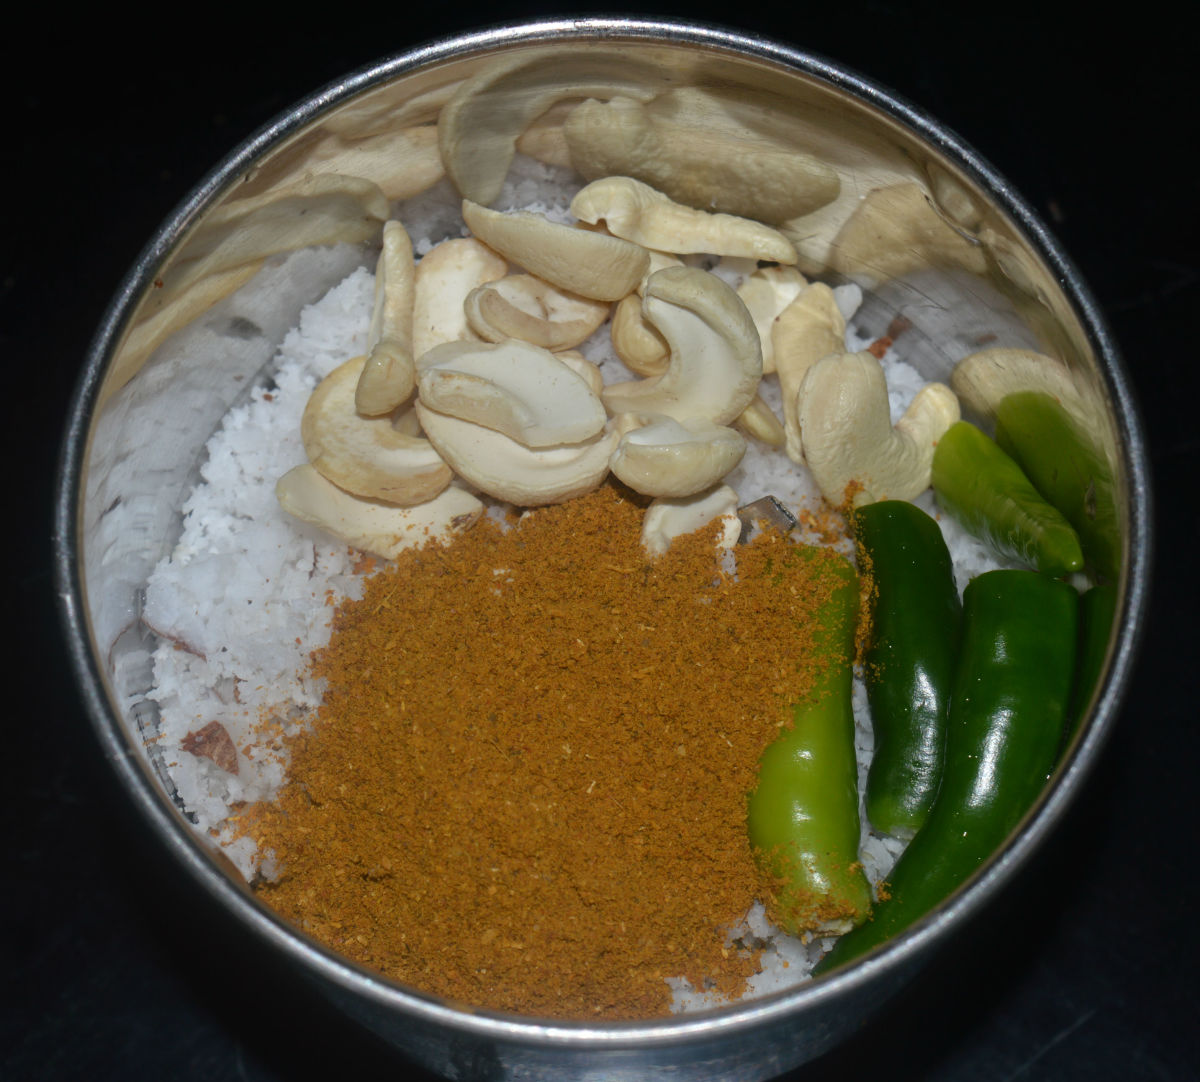 Step three: Grind grated coconut, green chilies, ginger, garlic, cashew nuts, coriander leaves, and kitchen king masala together adding water little by little to get a smooth paste.